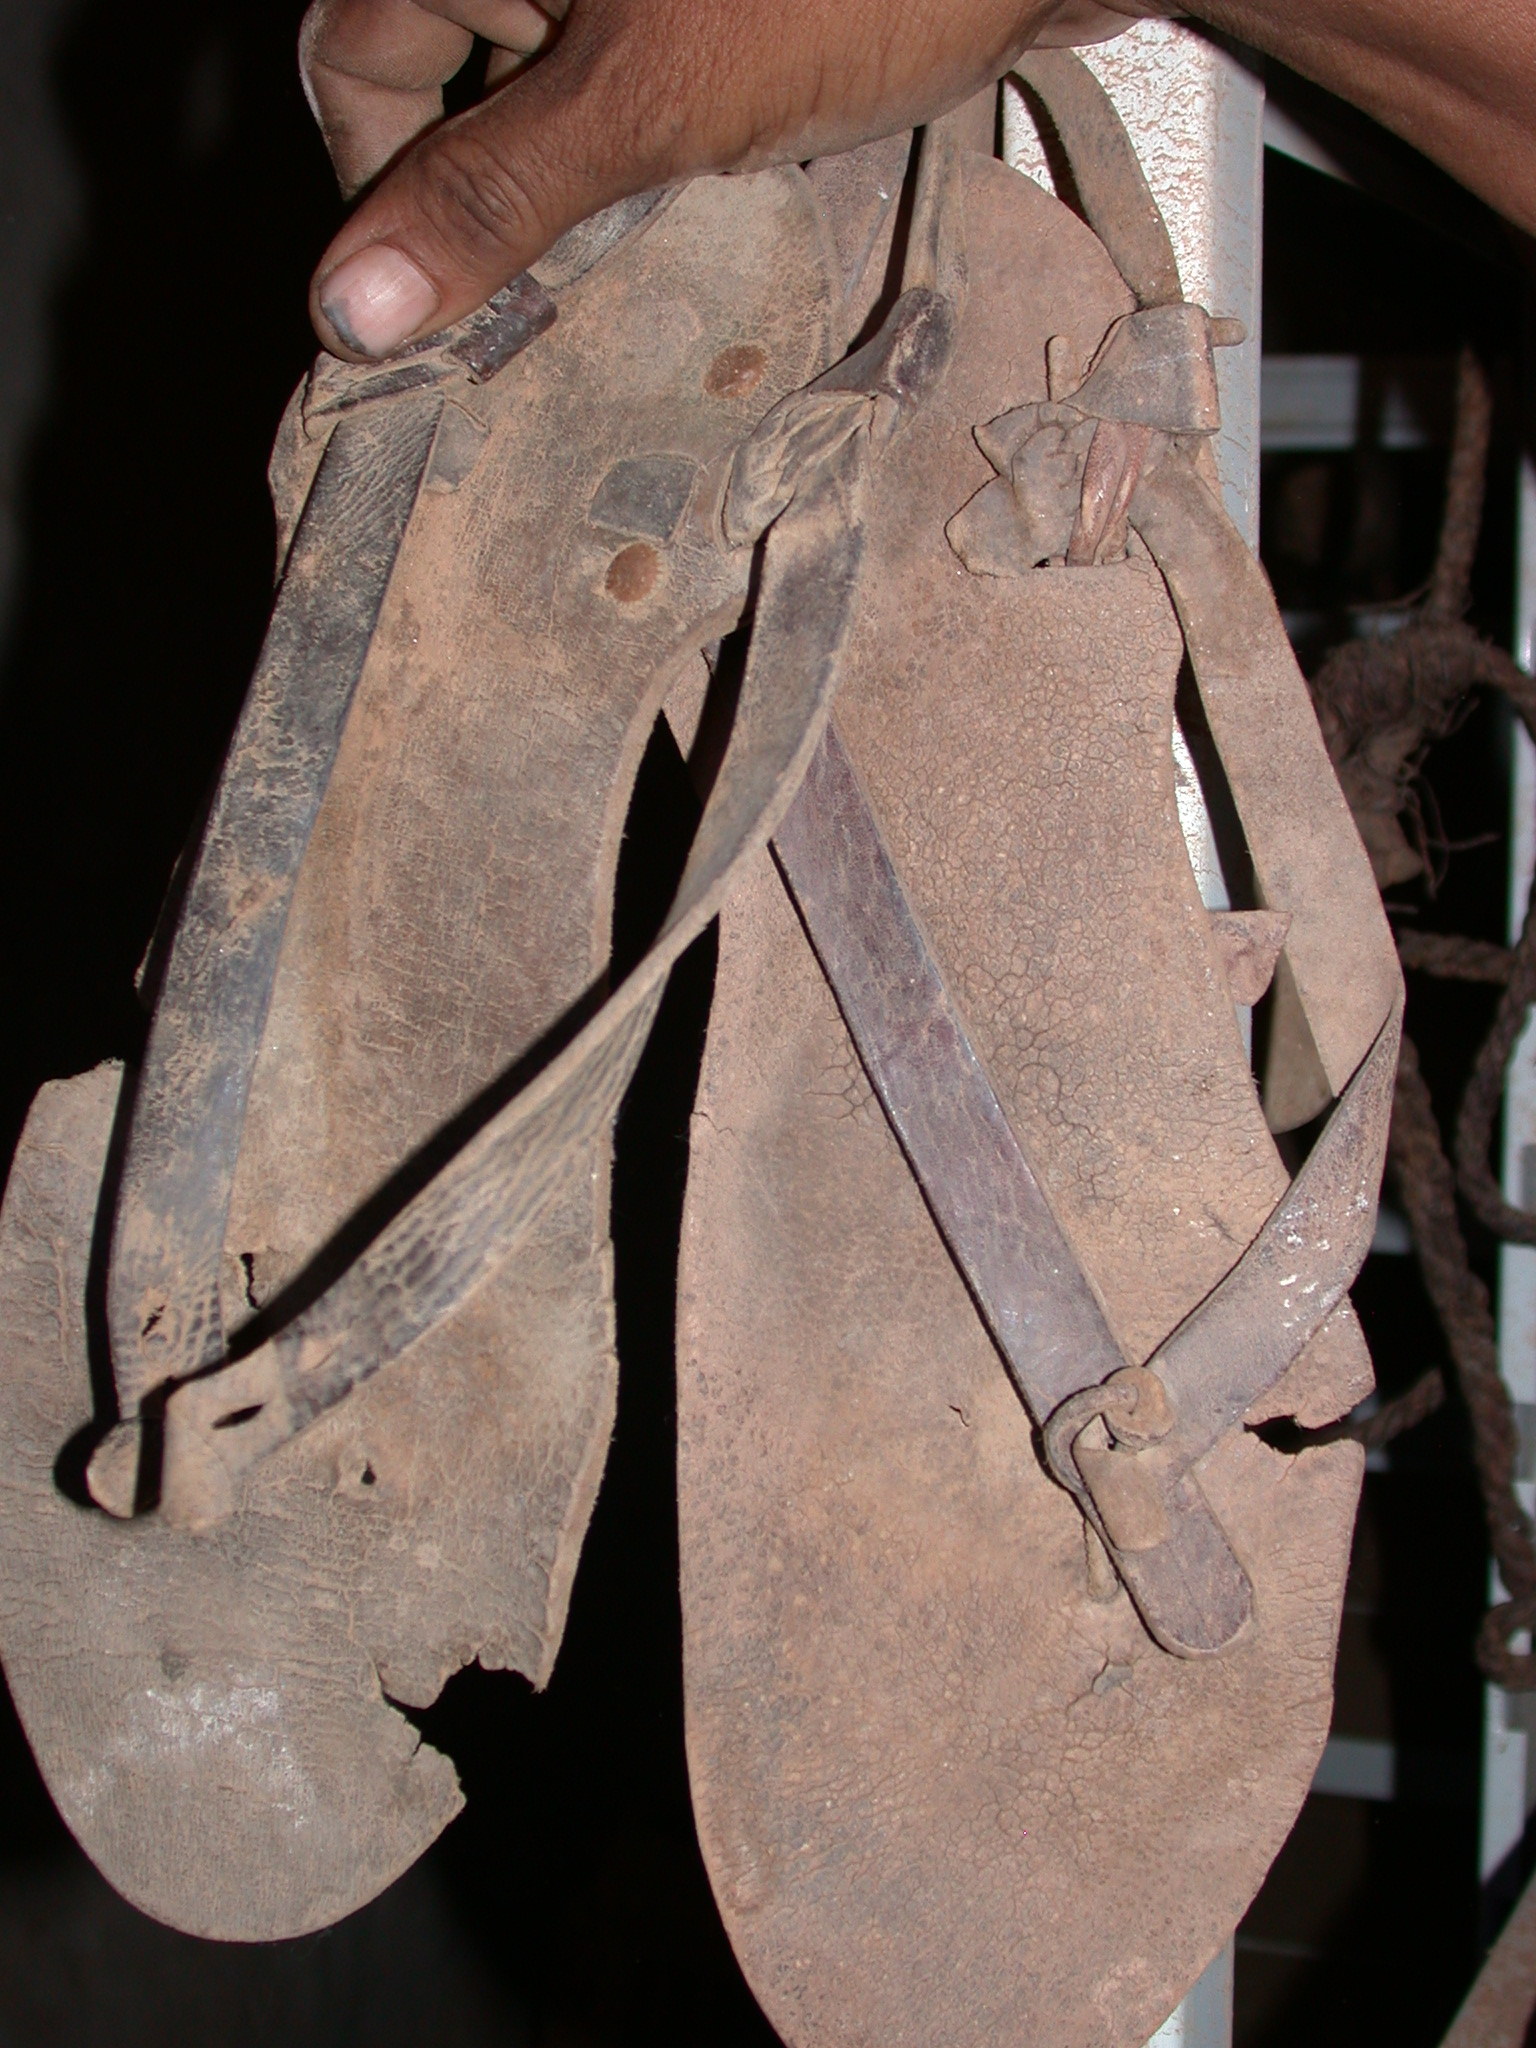 Traditional Sandals at Museum in Ancient City of Oulata, Mauritania